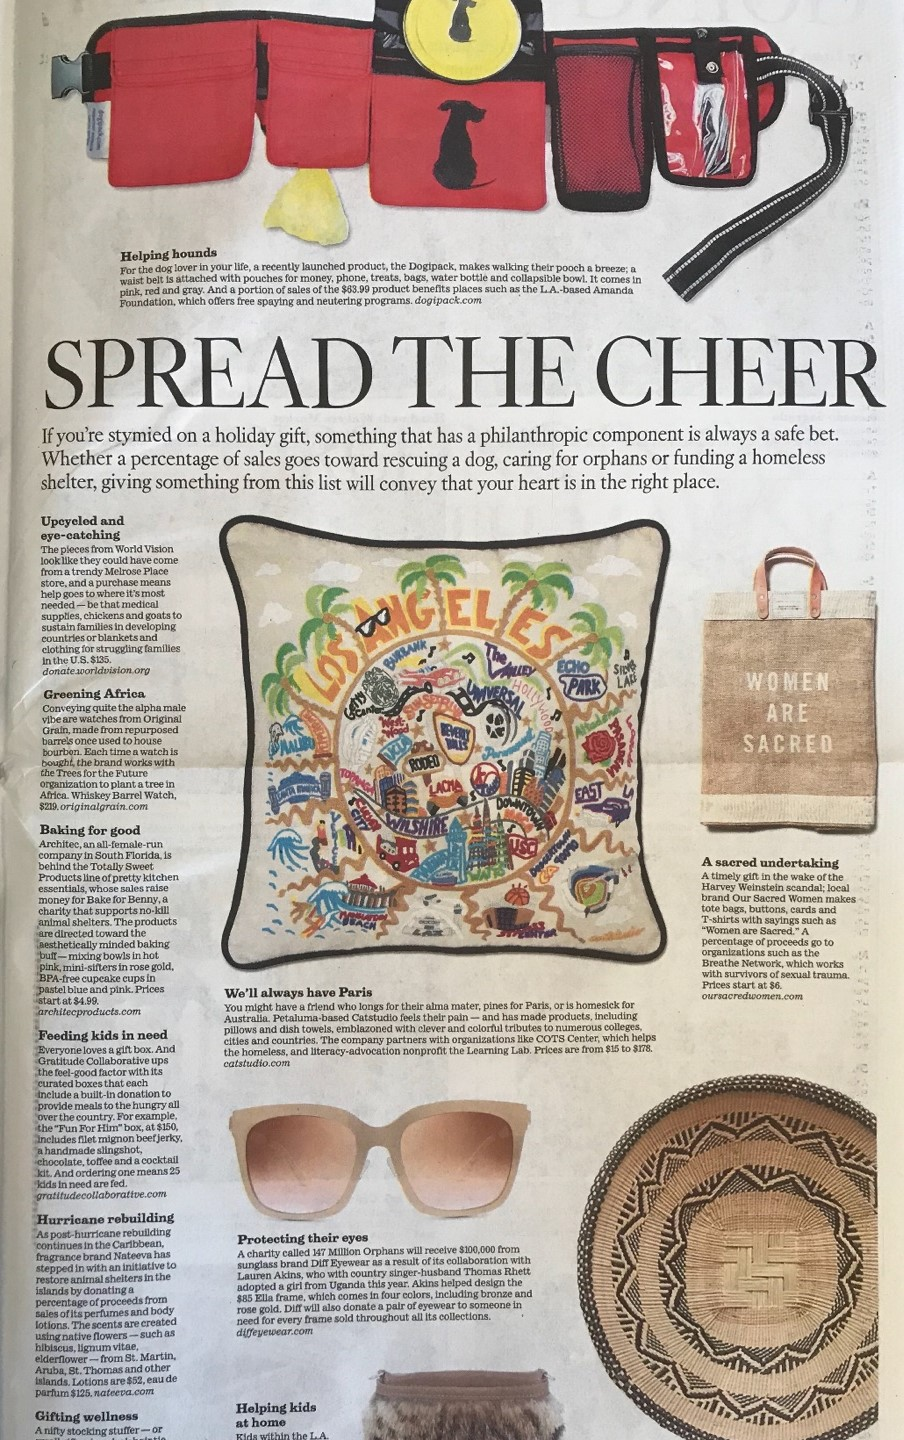 November 3, 2017  LOS ANGELES TIMES  (SUNDAY PRINT EDITION & DIGITAL)  2017 Holiday Gift Guide - So, you want to avoid holiday commercialism? These gifts give back to those in need